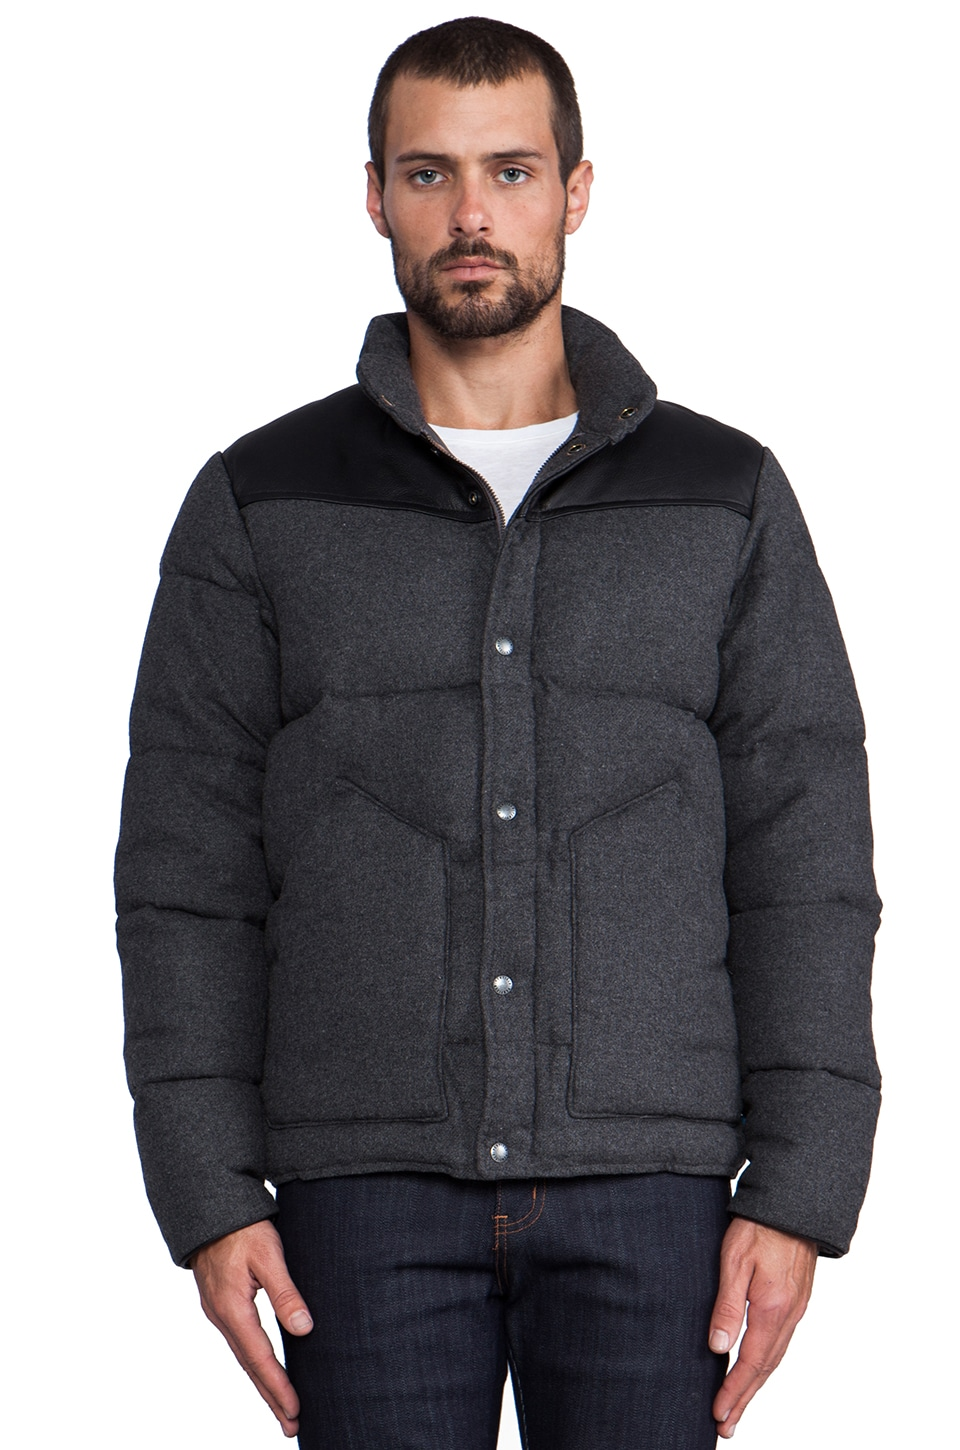 Penfield Blue Label Gillman Melton Insulated Jacket in Grey